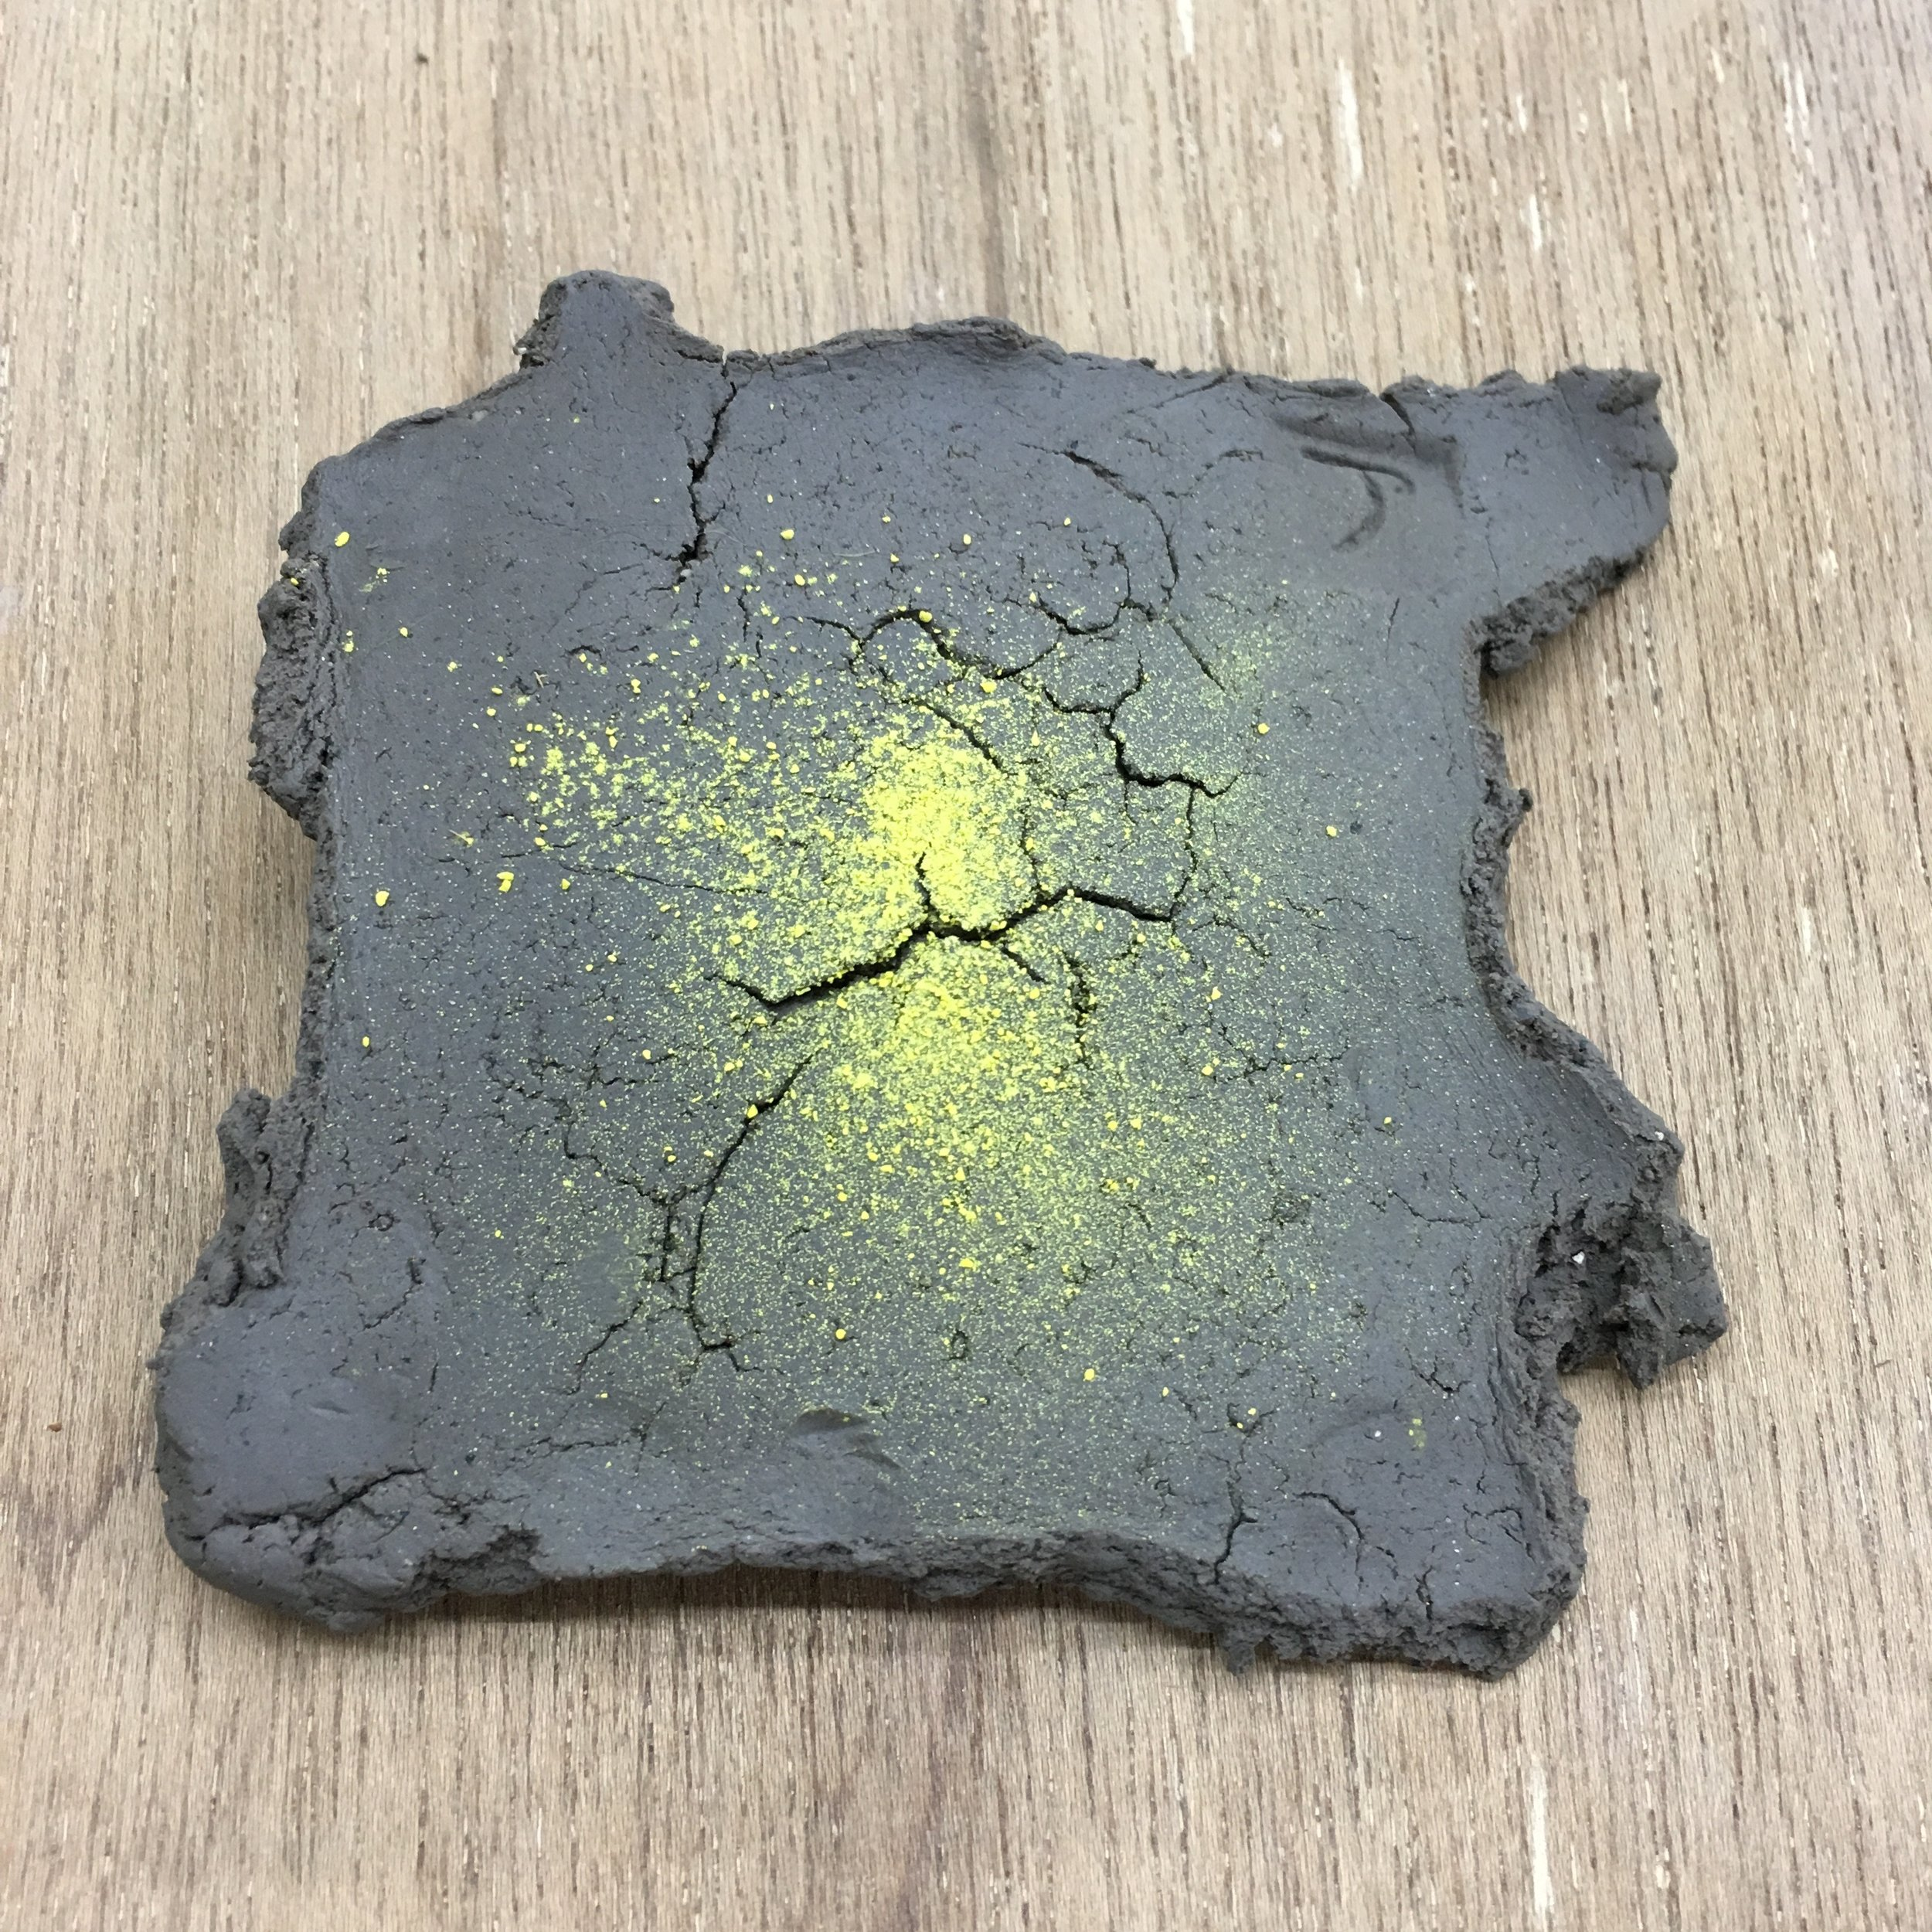 Much testing on Japanese clay begins - mainly to see if the natural fibres will fire ok. This is another theme based around the refining of uranium - 'yellow cake'.